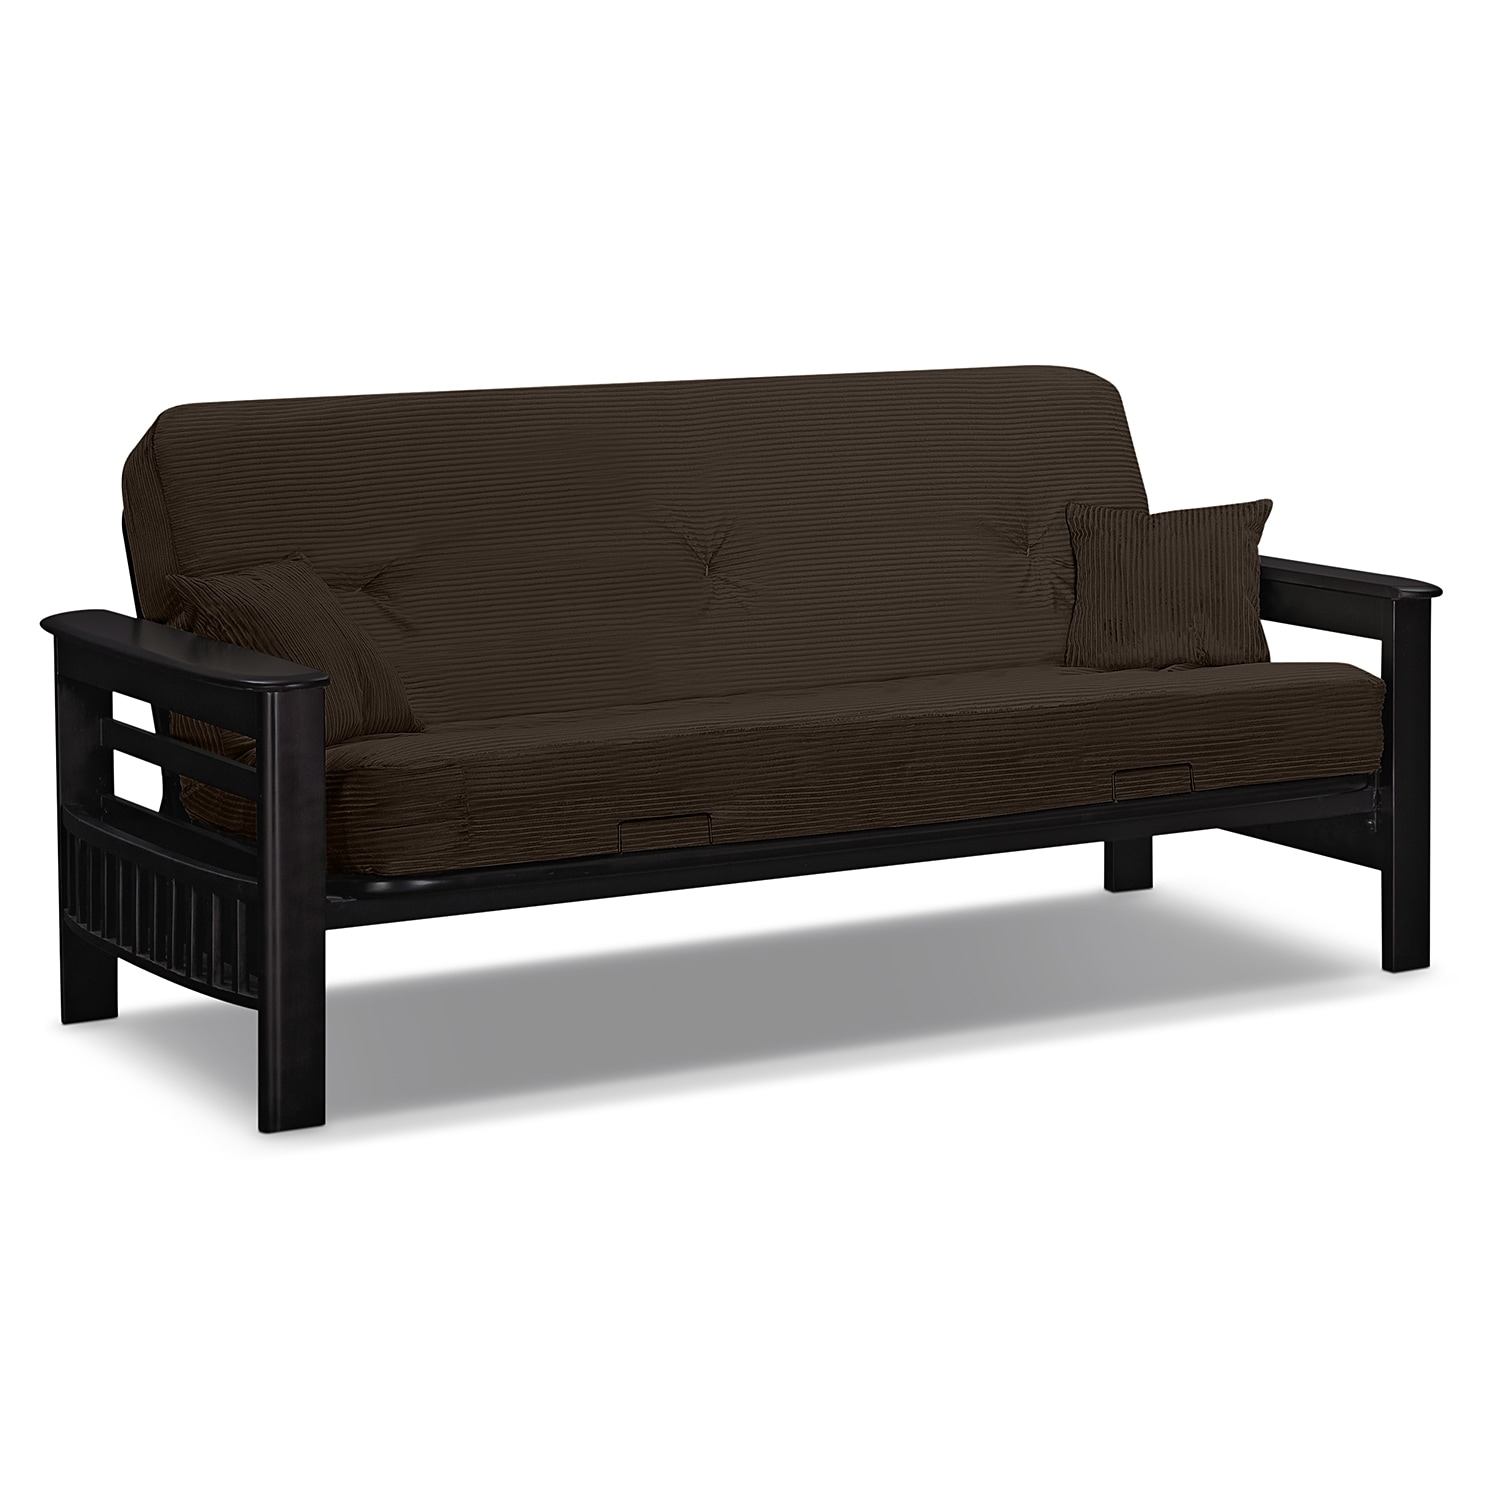 Futon Schlafsofa Futon January Palmdino Sears Sofa Bed Mattress